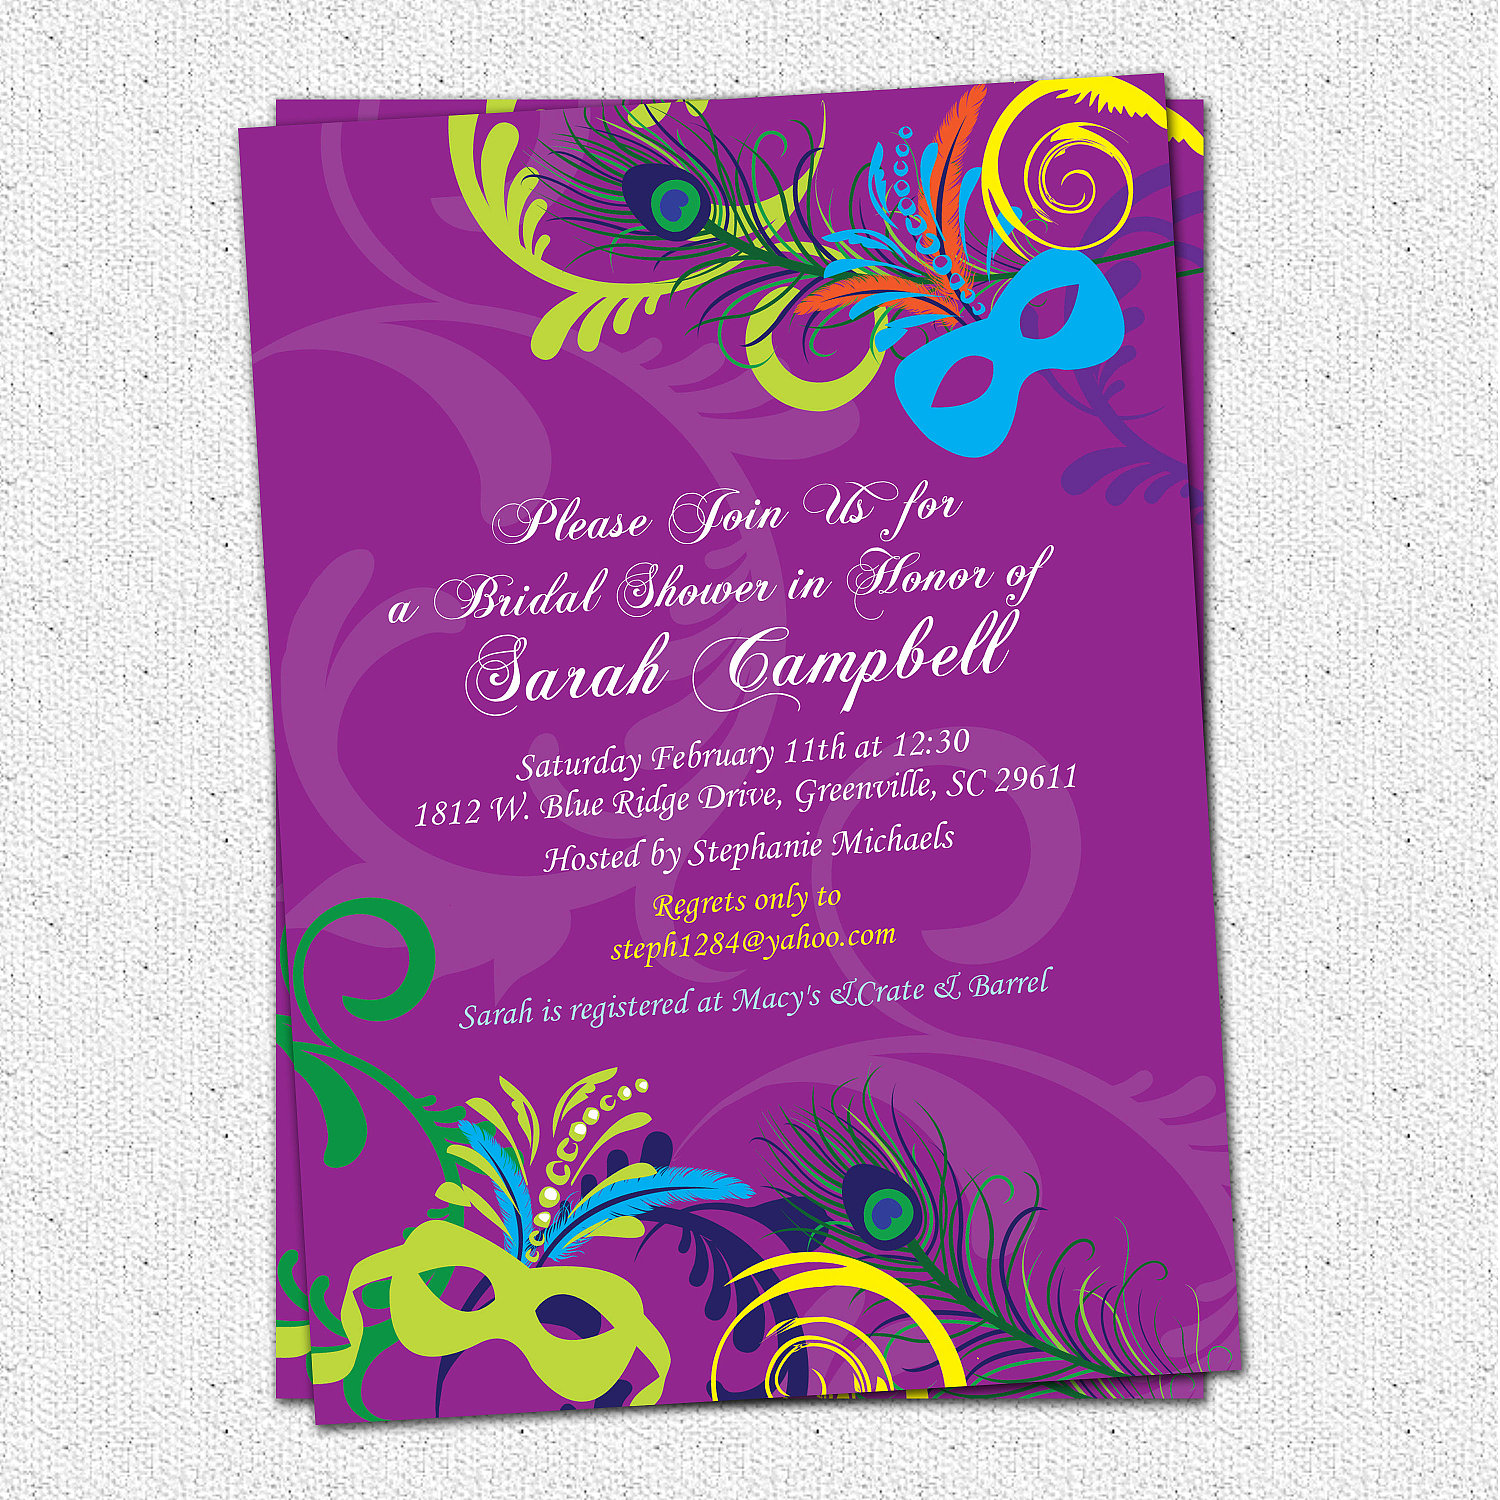 Bridal Shower Invitations MardiGras Mardi Gras Wedding Invitation